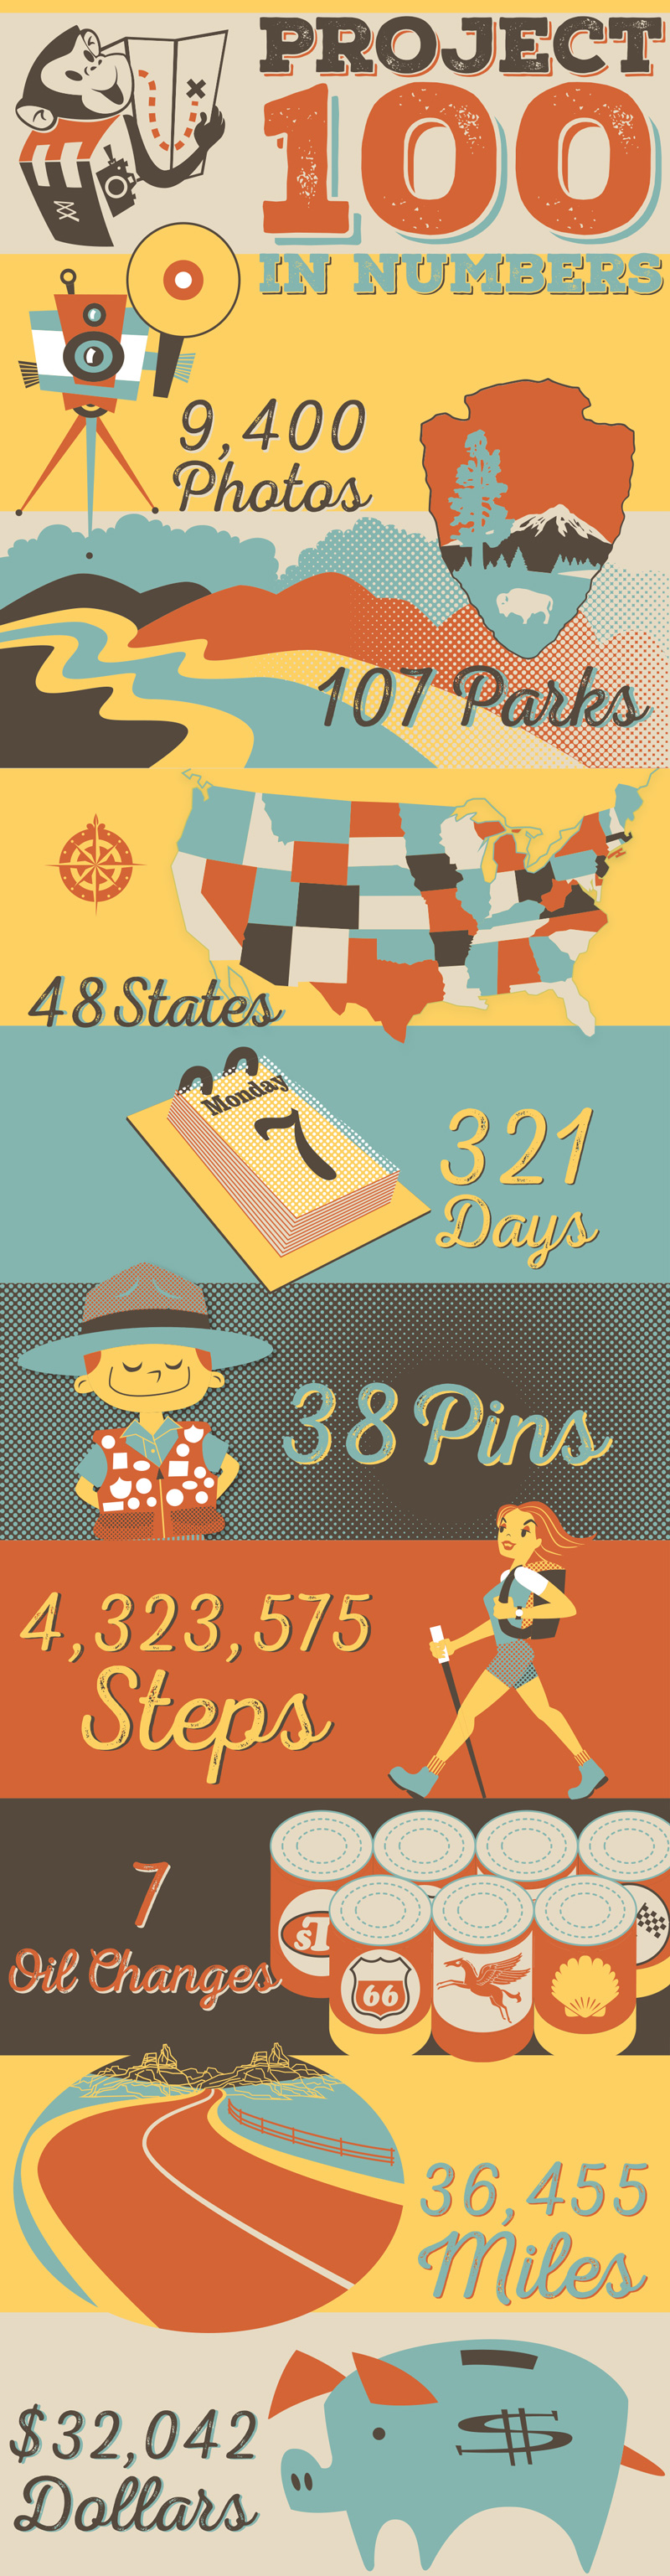 Infographic Project 100 in Numbers